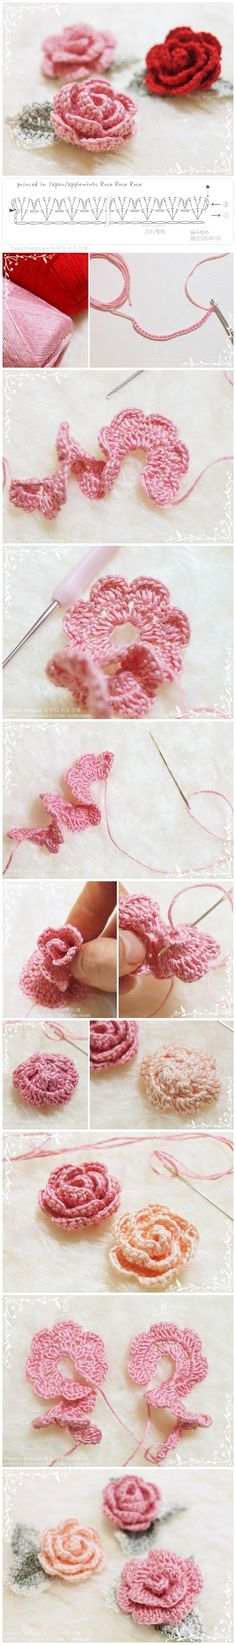 How to make hand-knitted rose: